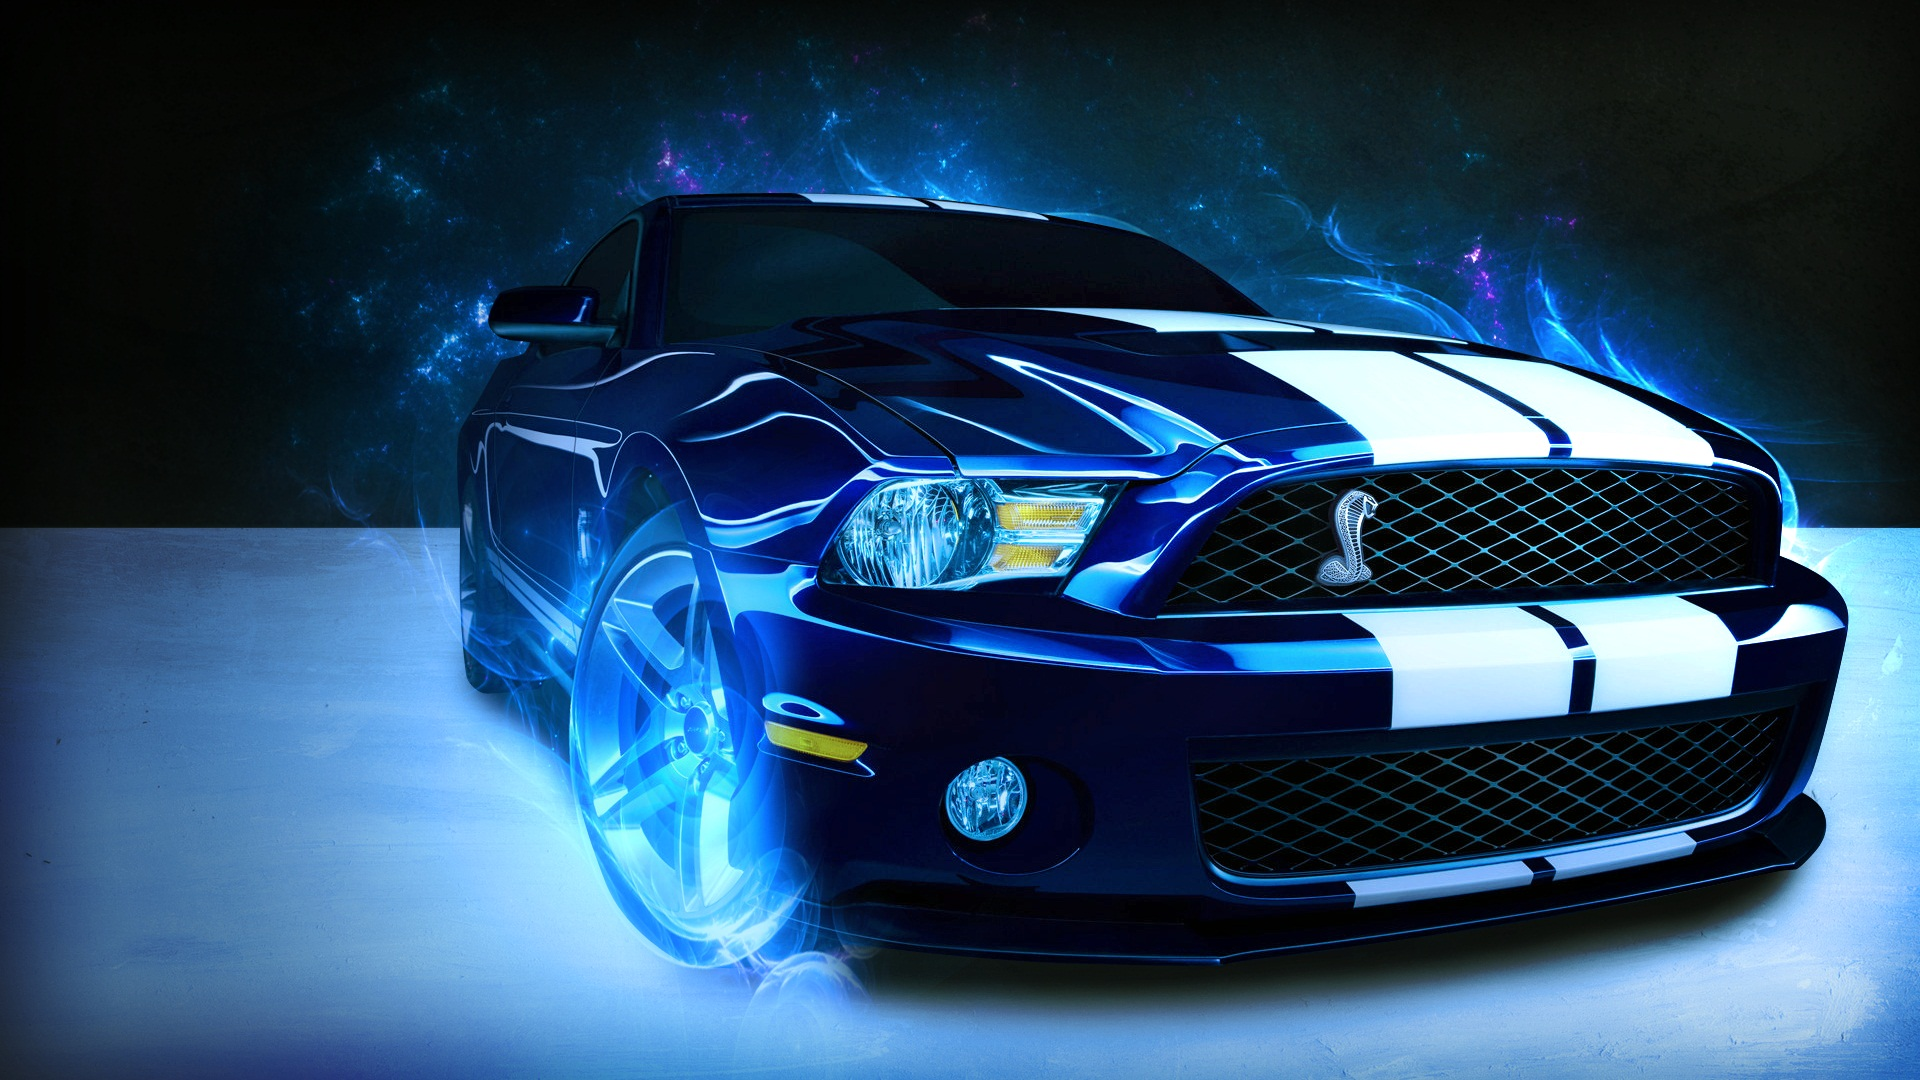 ford mustang wallpapers high quality | download free